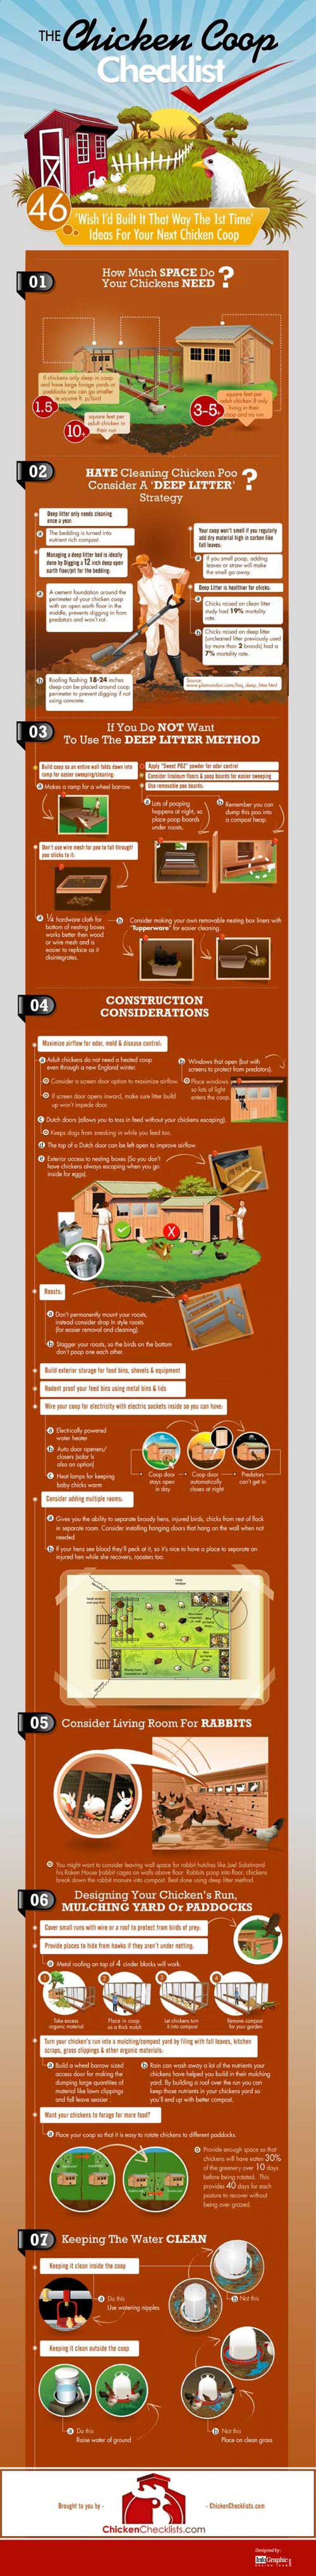 46 Ideas to Help Build The Best Chicken Coop   Visual.ly